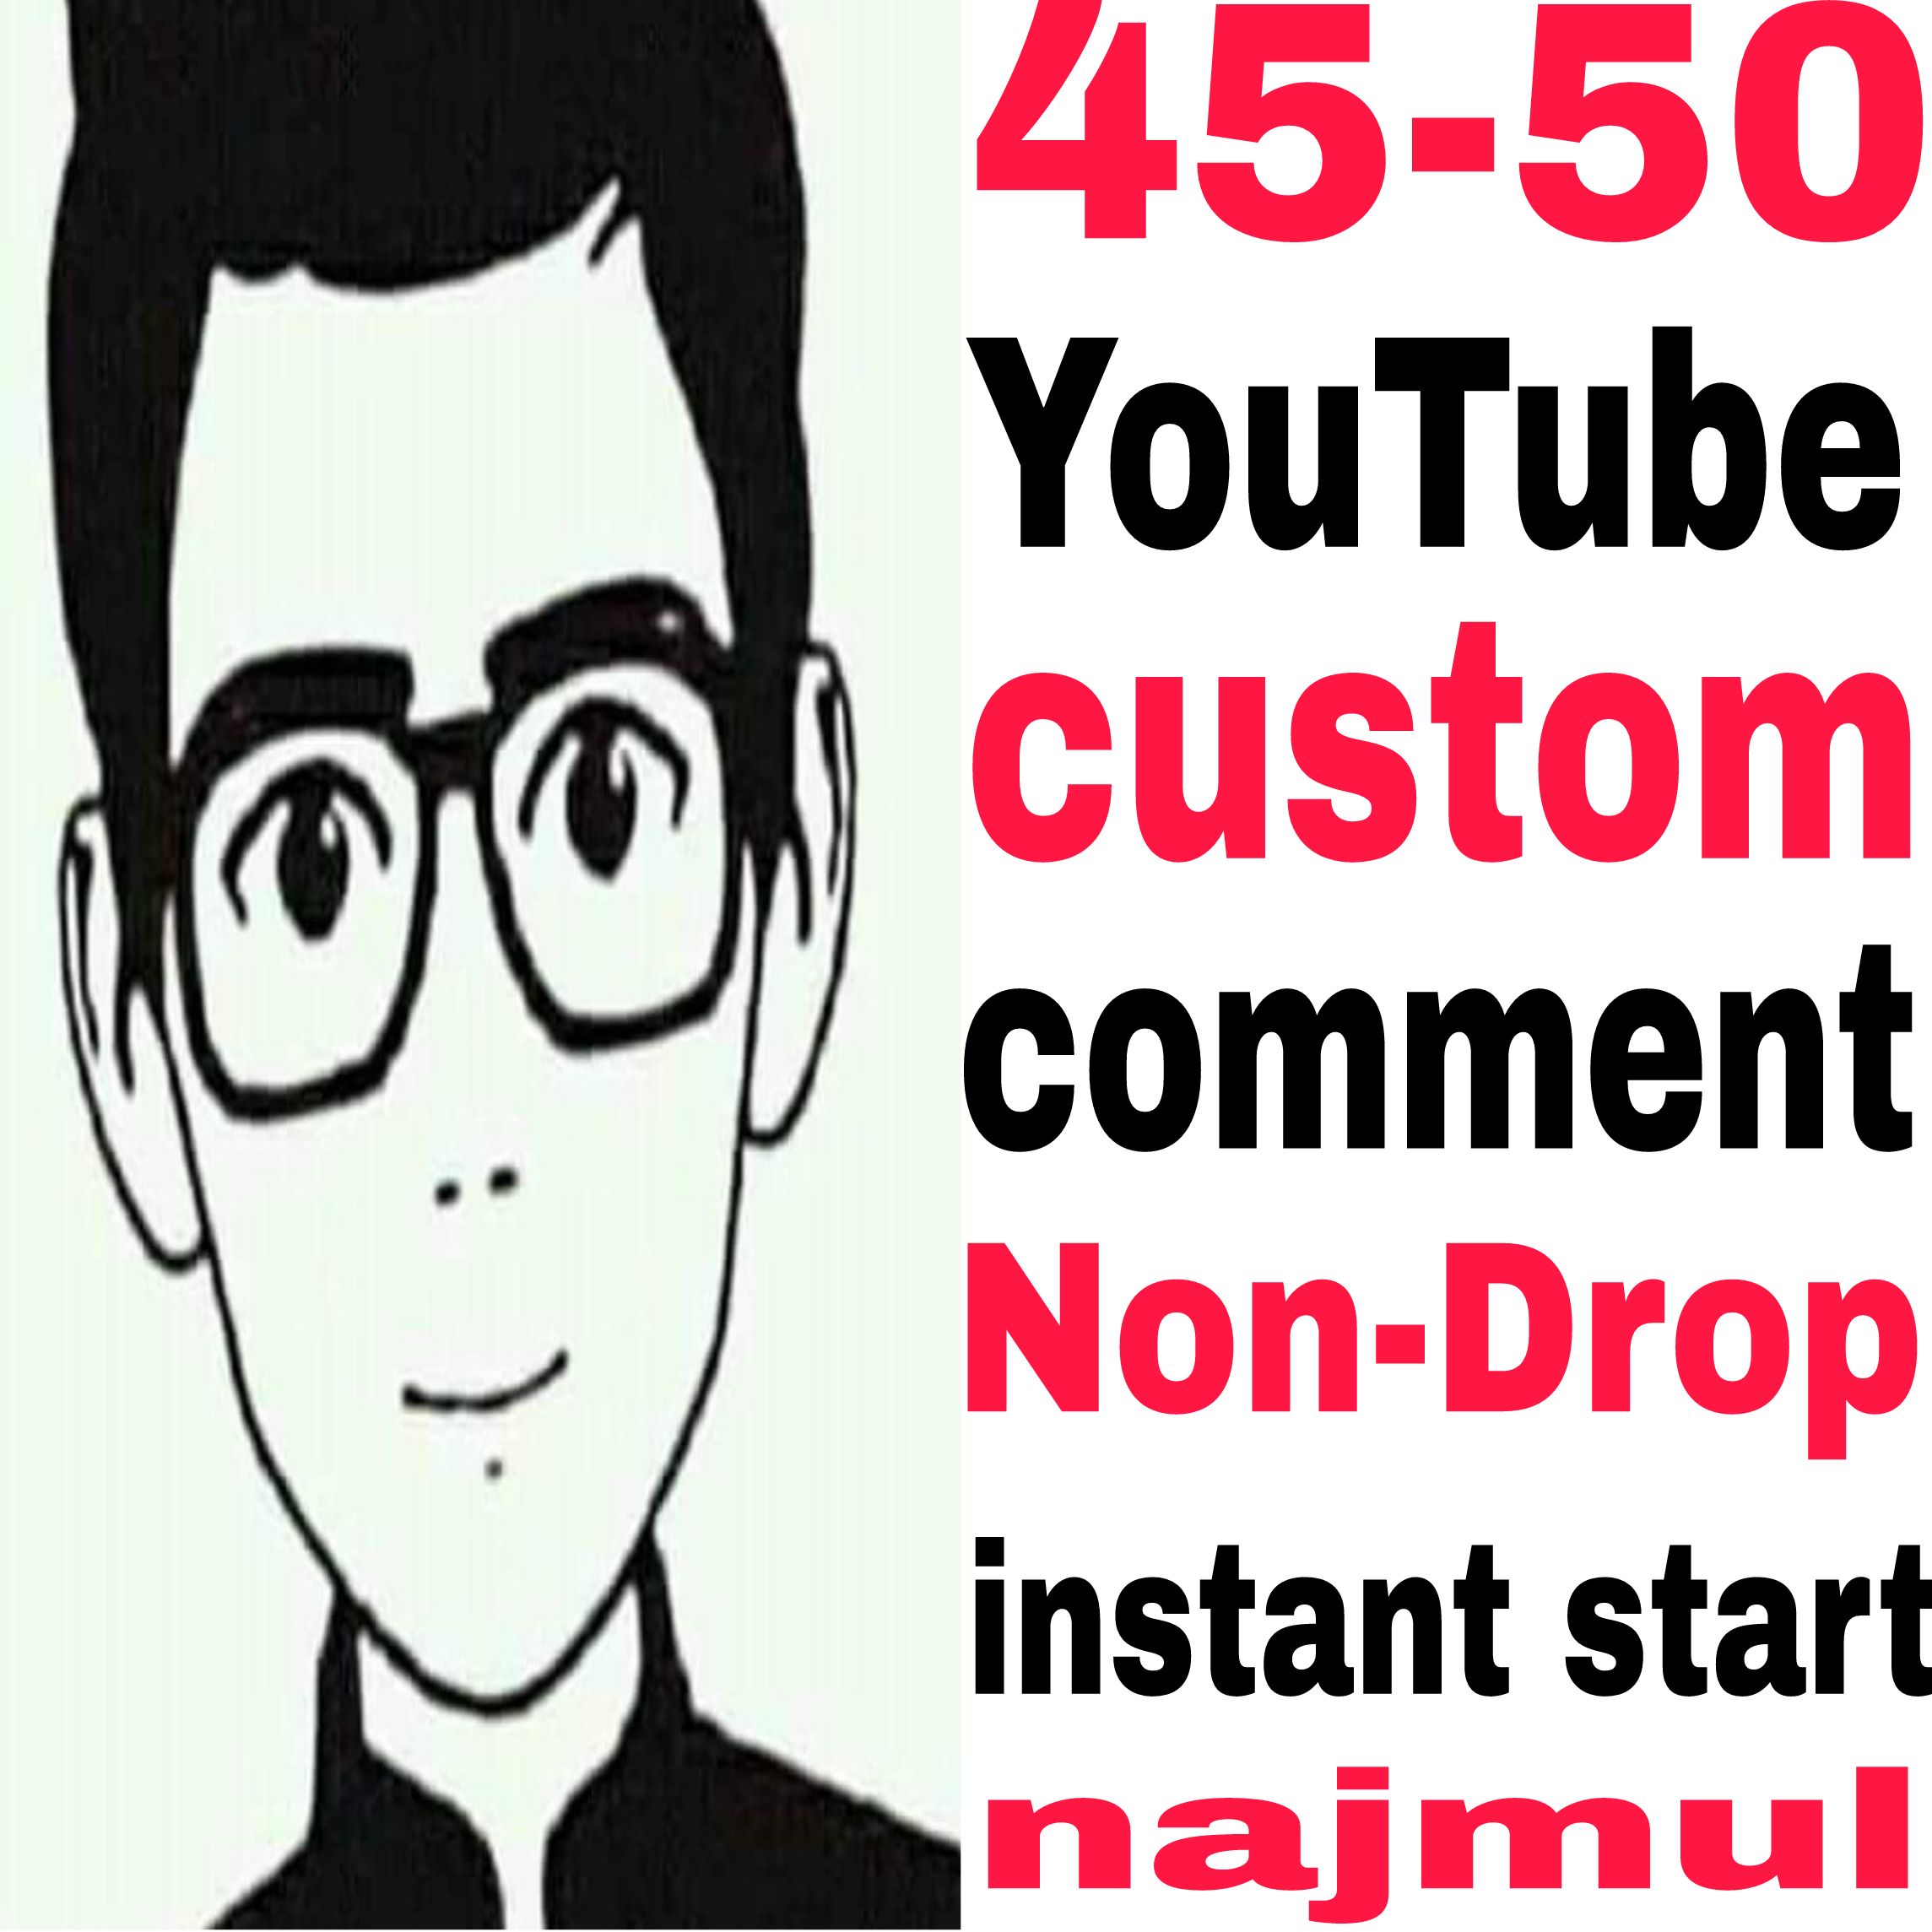 Non-Drop Guaranteed 45-50 custom comments from real active user just 1-5 hours completed